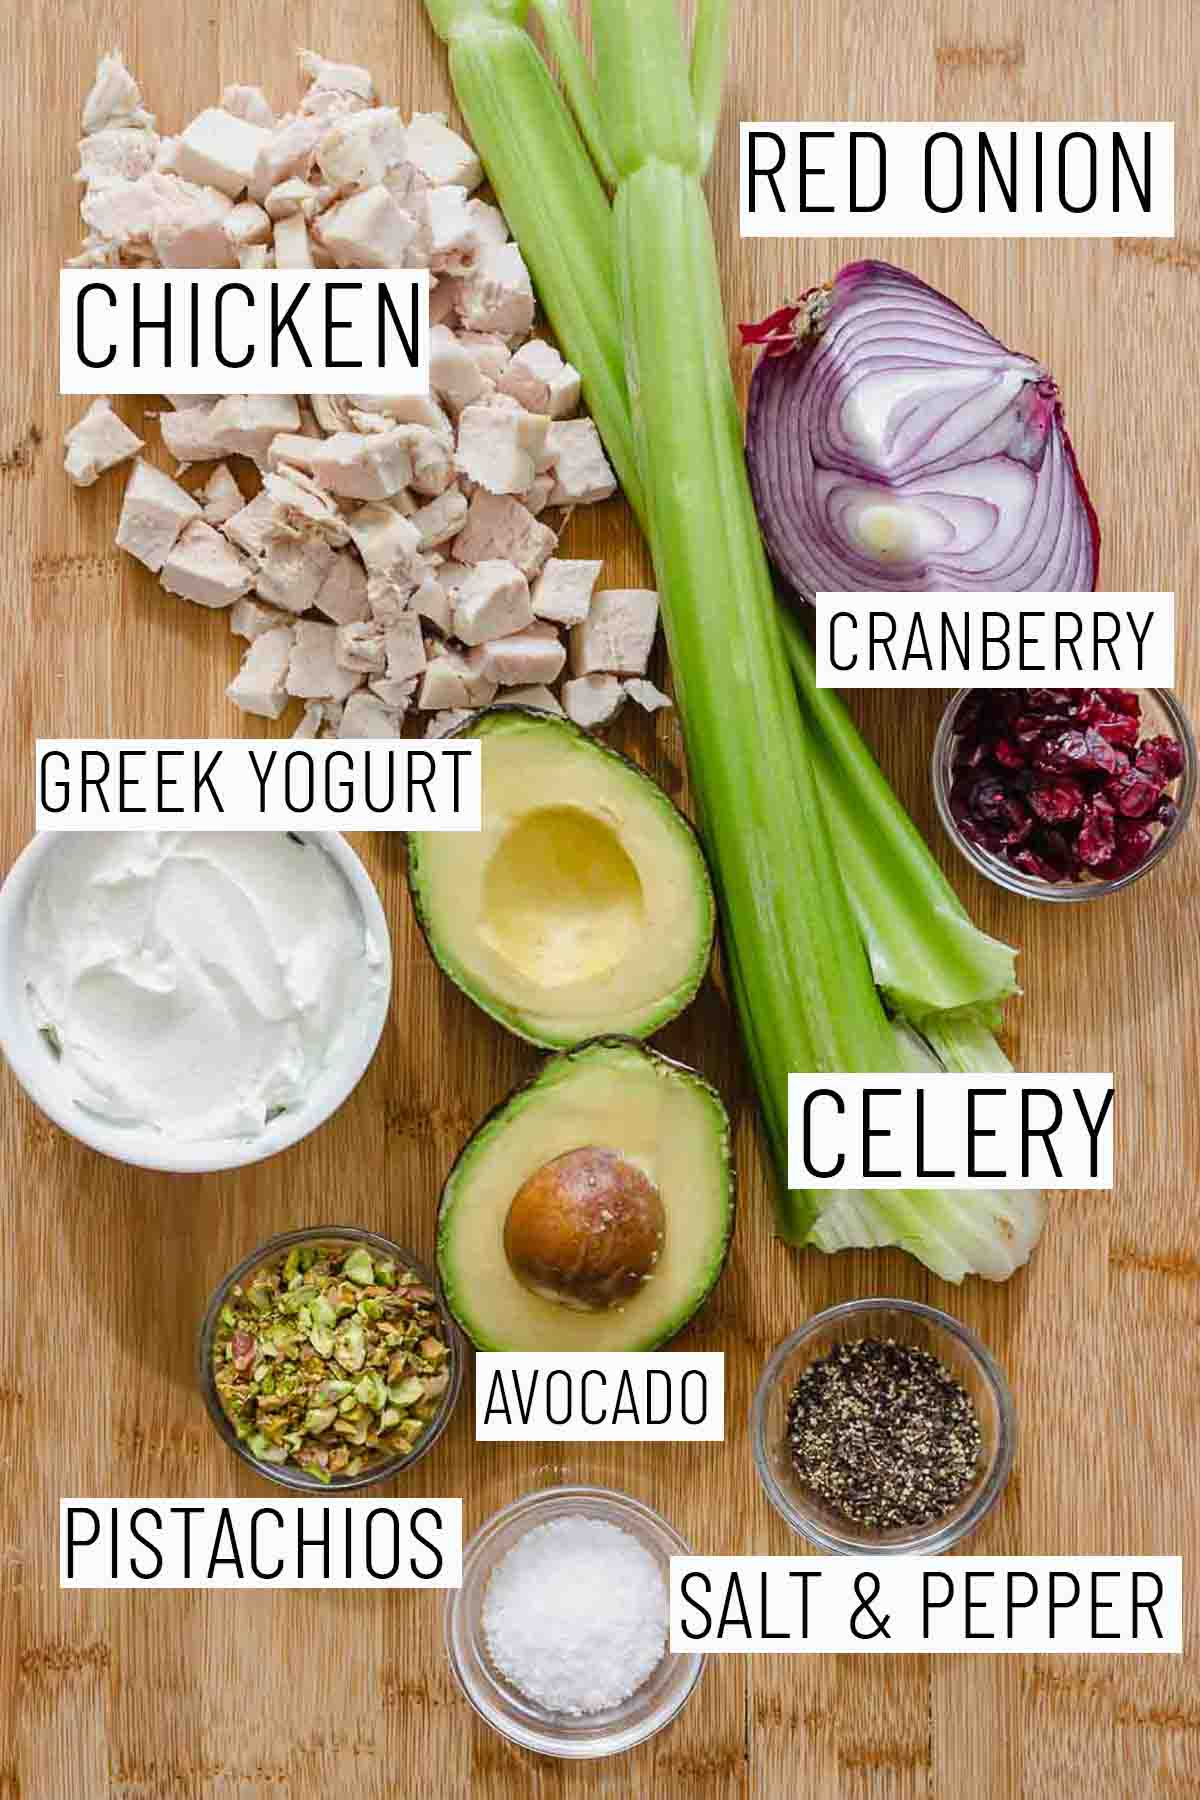 Flat lay image of portioned recipe ingredients including red onion, chicken, cranberry, Greek yogurt, celery, avocado, and pistachio.